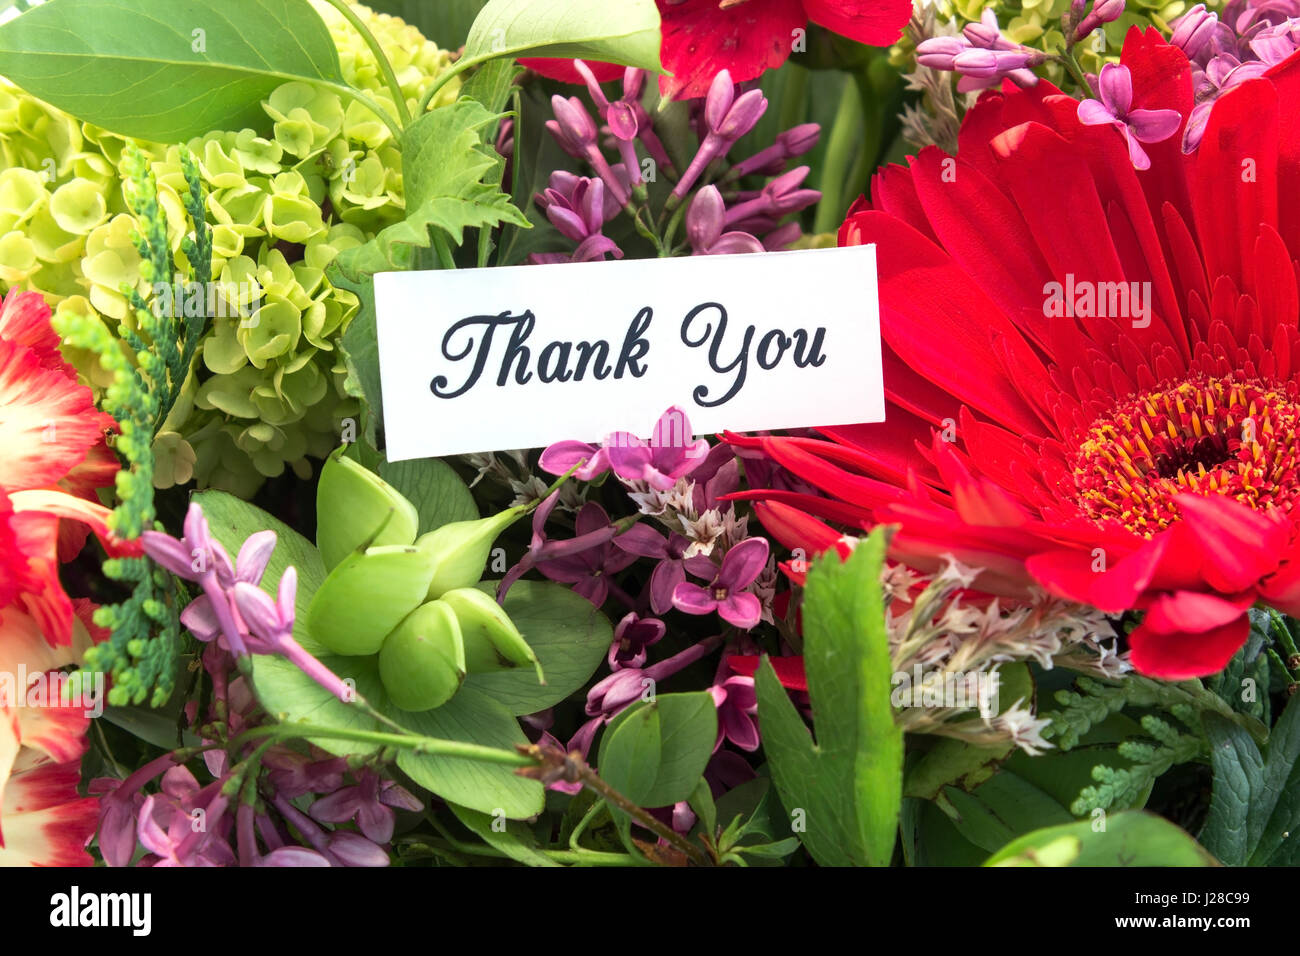 Thank you with flowers stock photos thank you with flowers stock thank you card with bouquet of spring flowers stock image izmirmasajfo